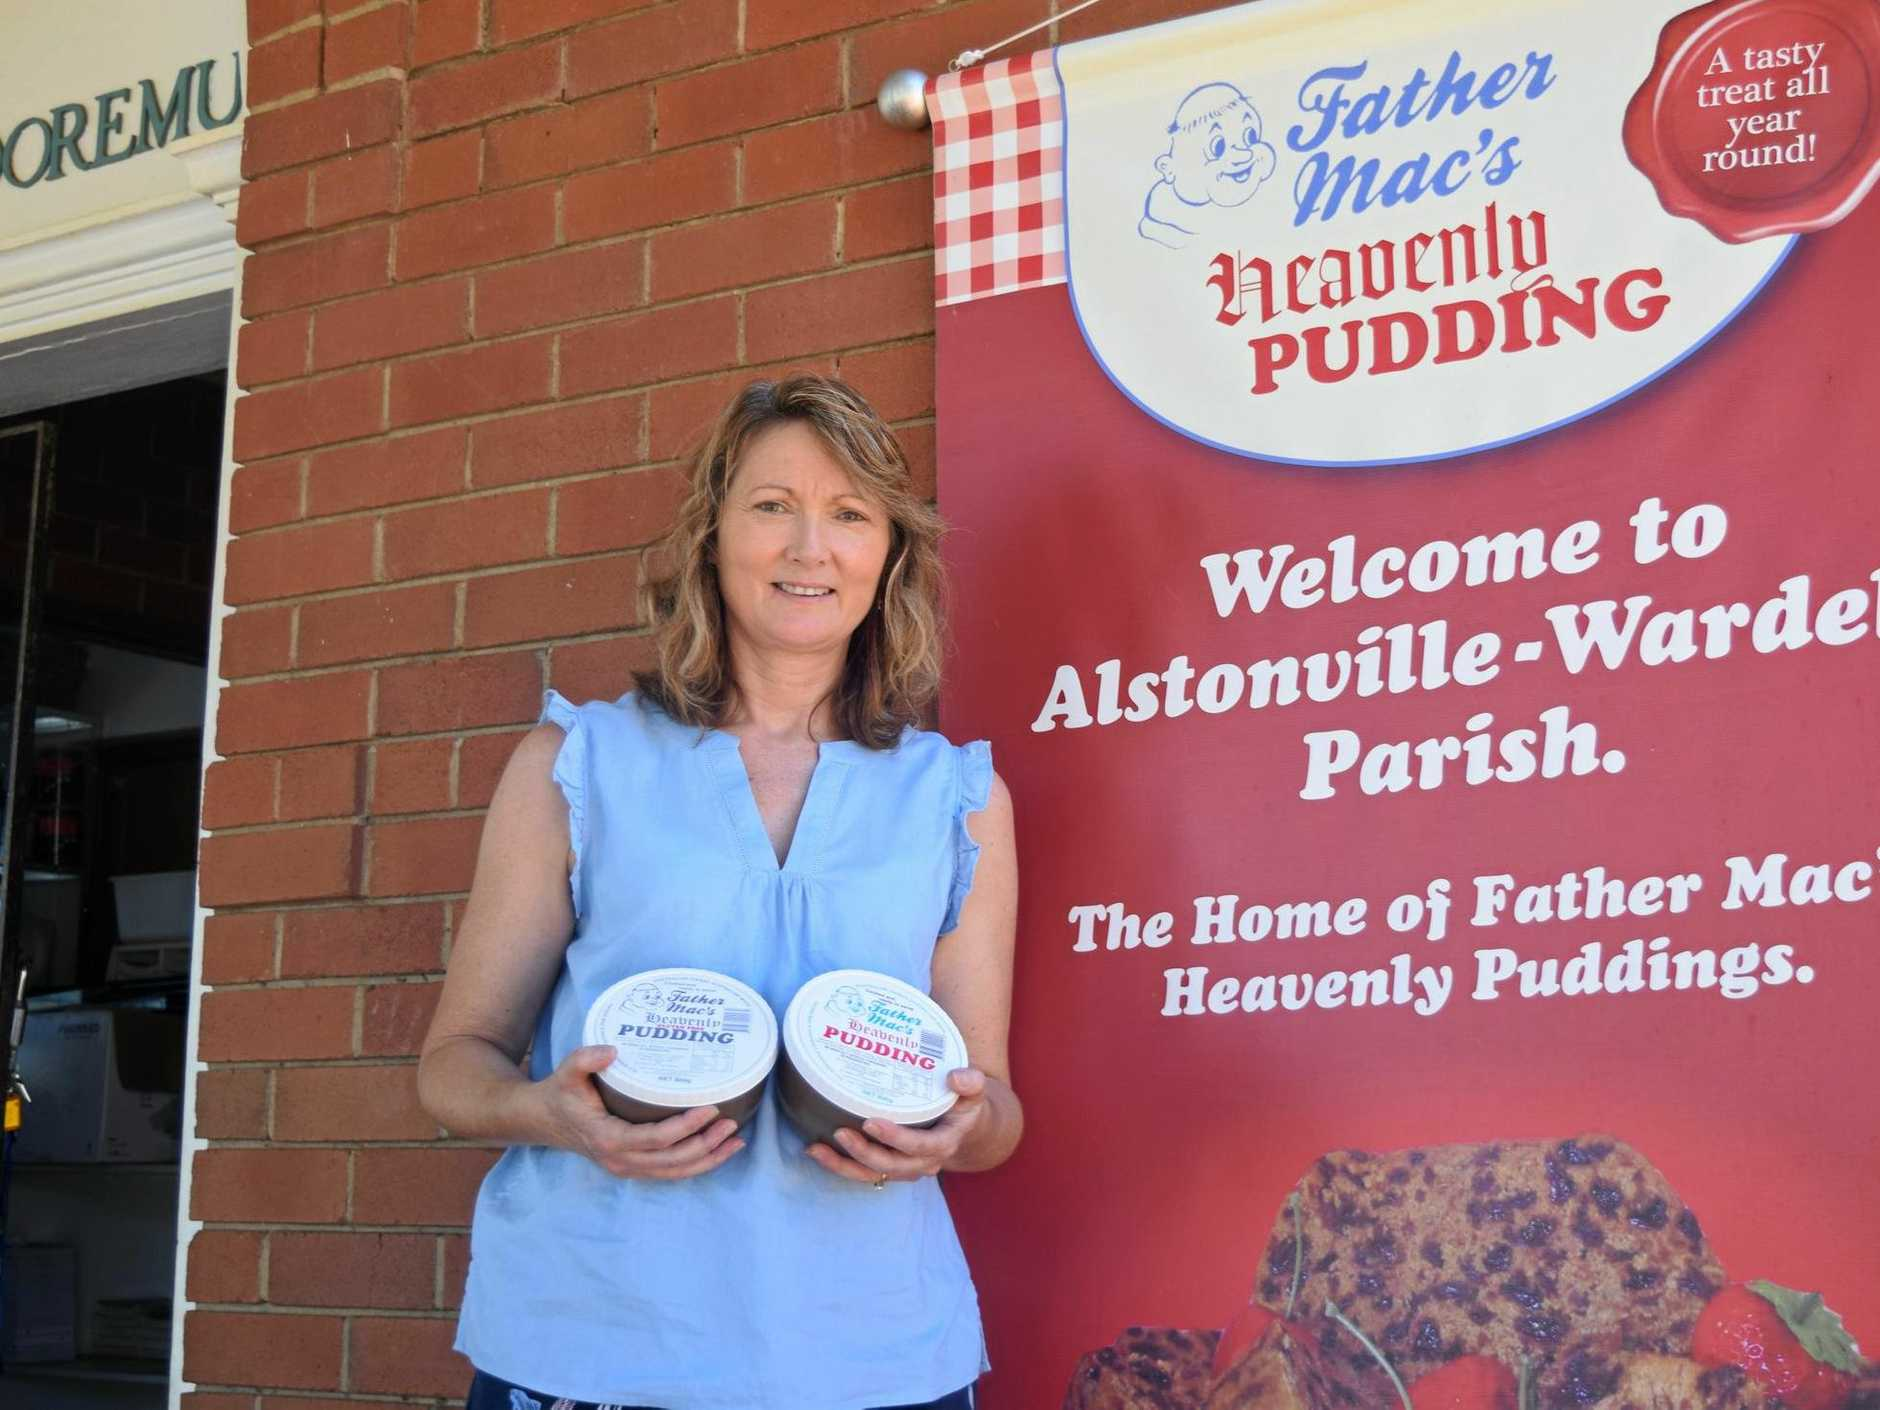 END OF AN ERA: Manager, caretaker and Alstonville Parish secretary of 18 years Tanya Pagotto says the closure Father Mac's Heavenly Puddings is bittersweet.